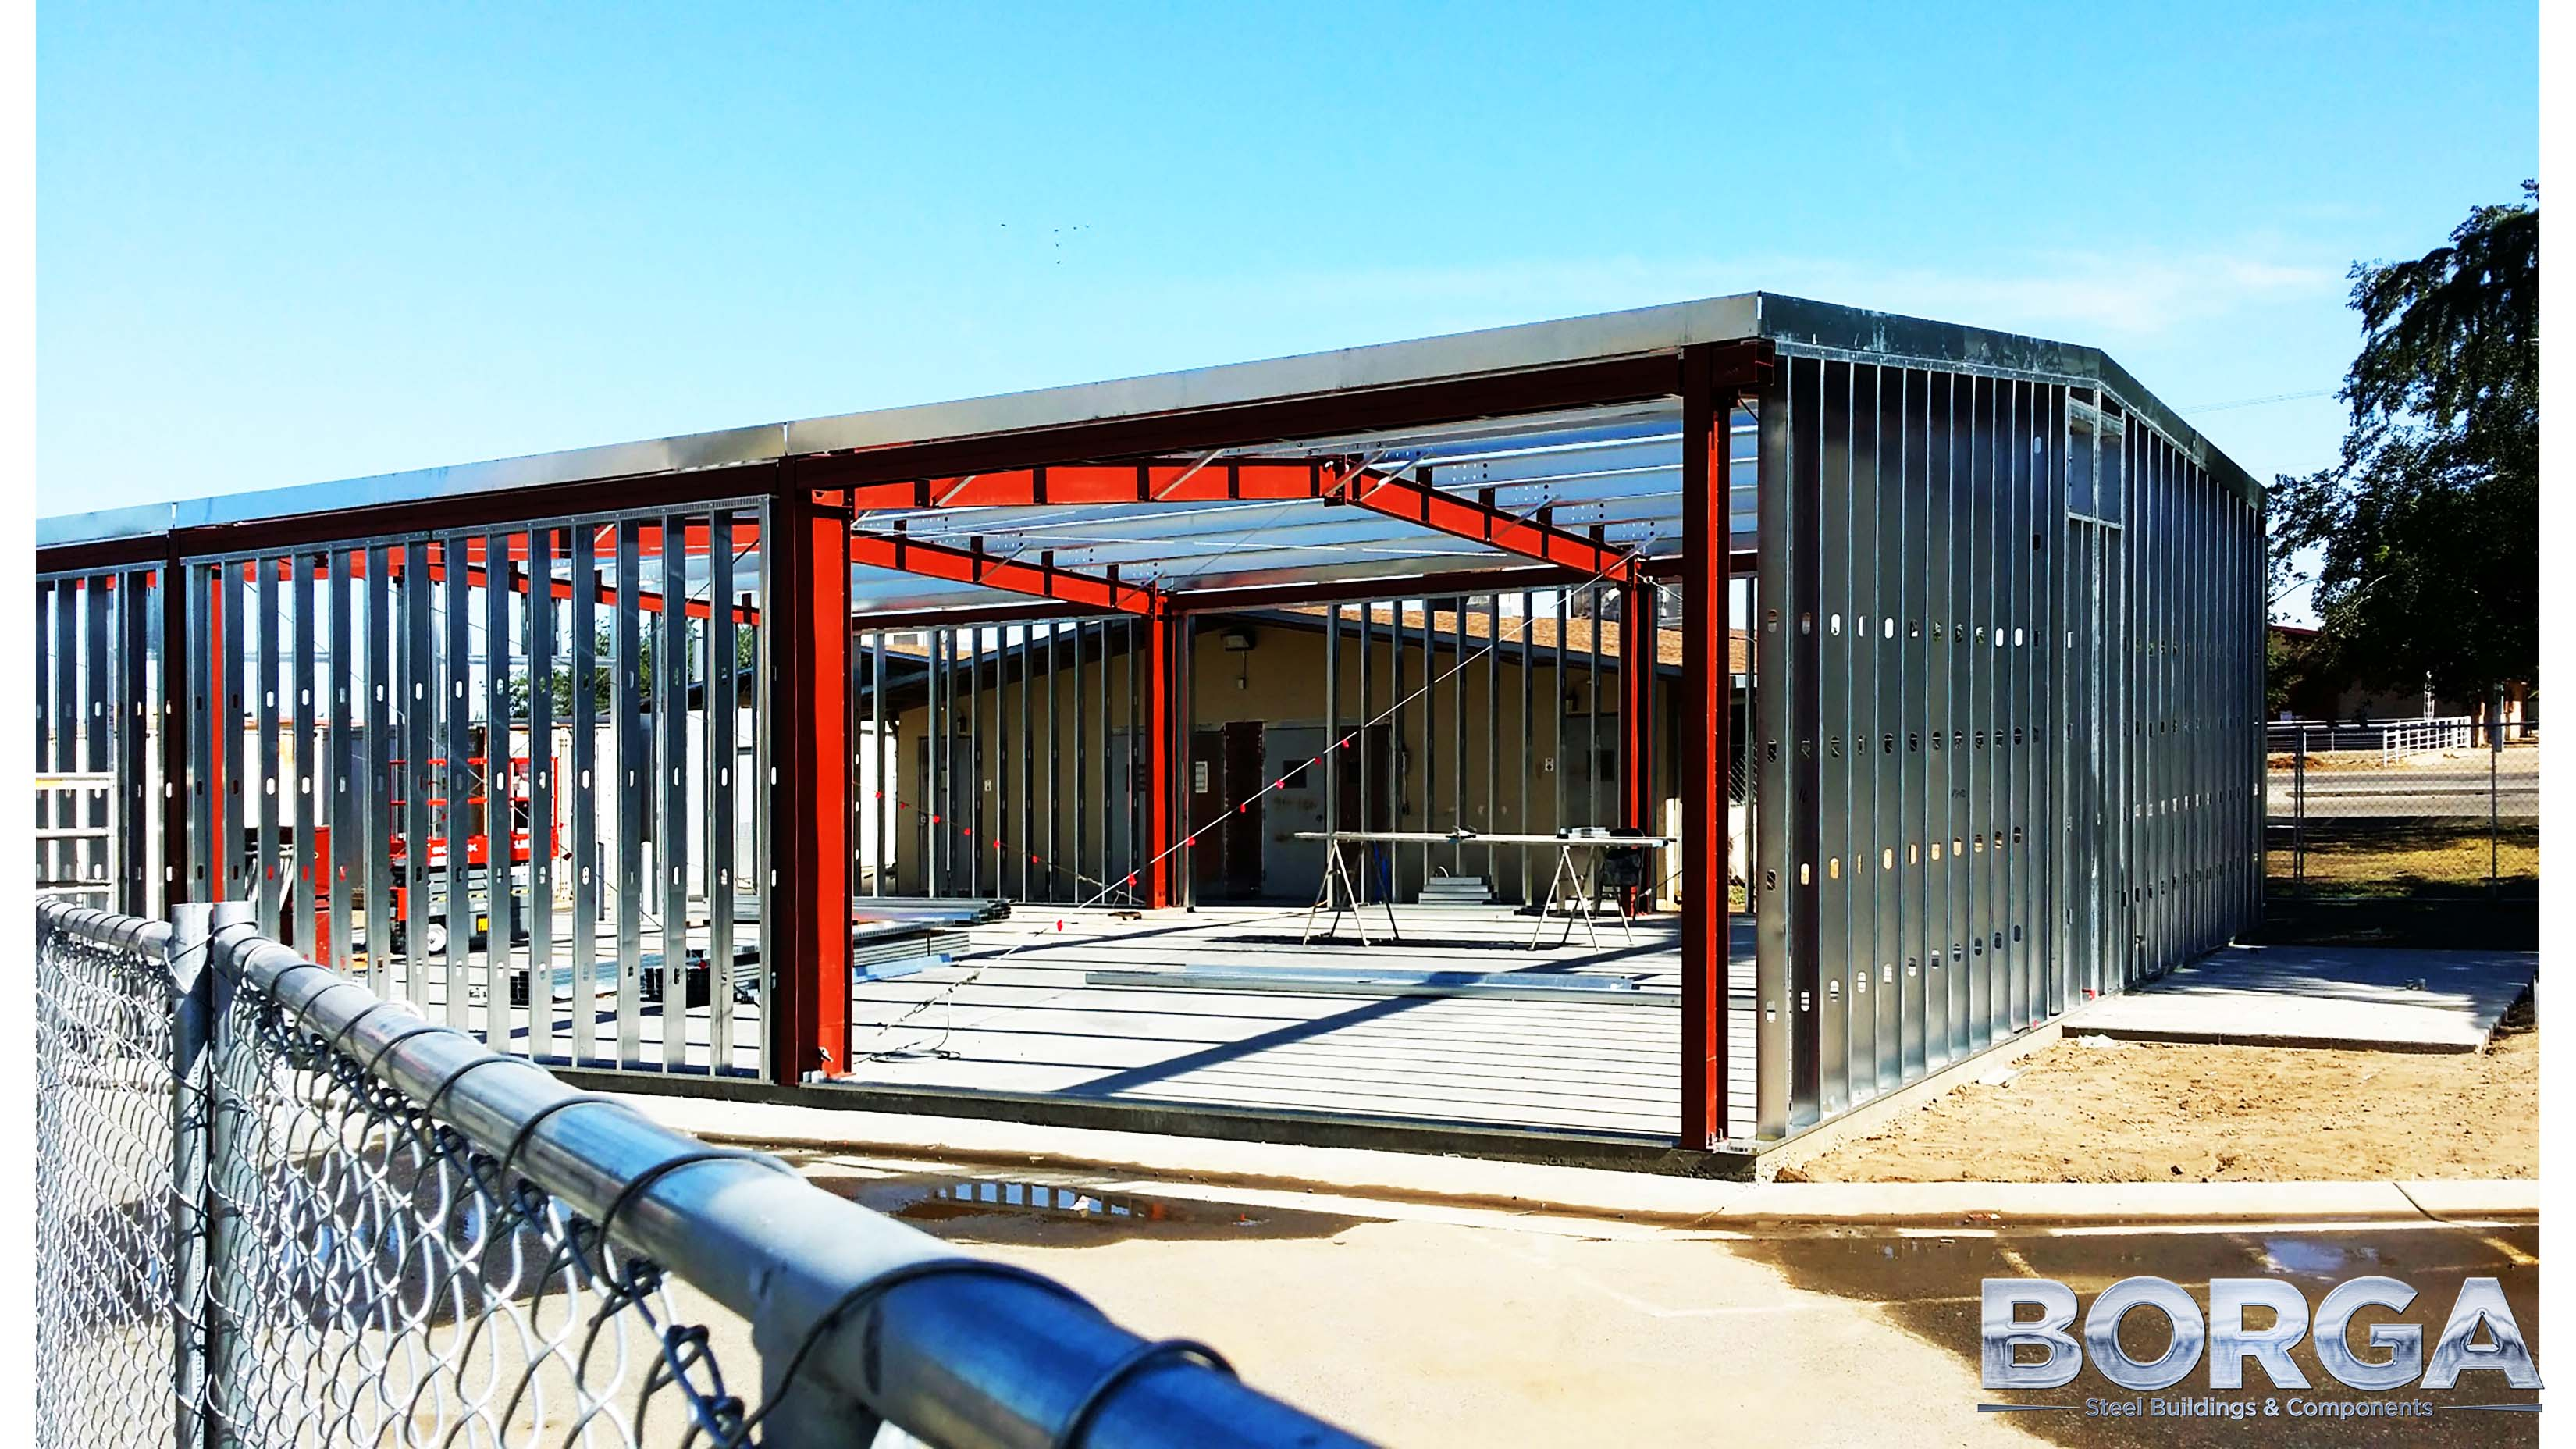 borga steel buildings and components fresno state university agriculture metal construction